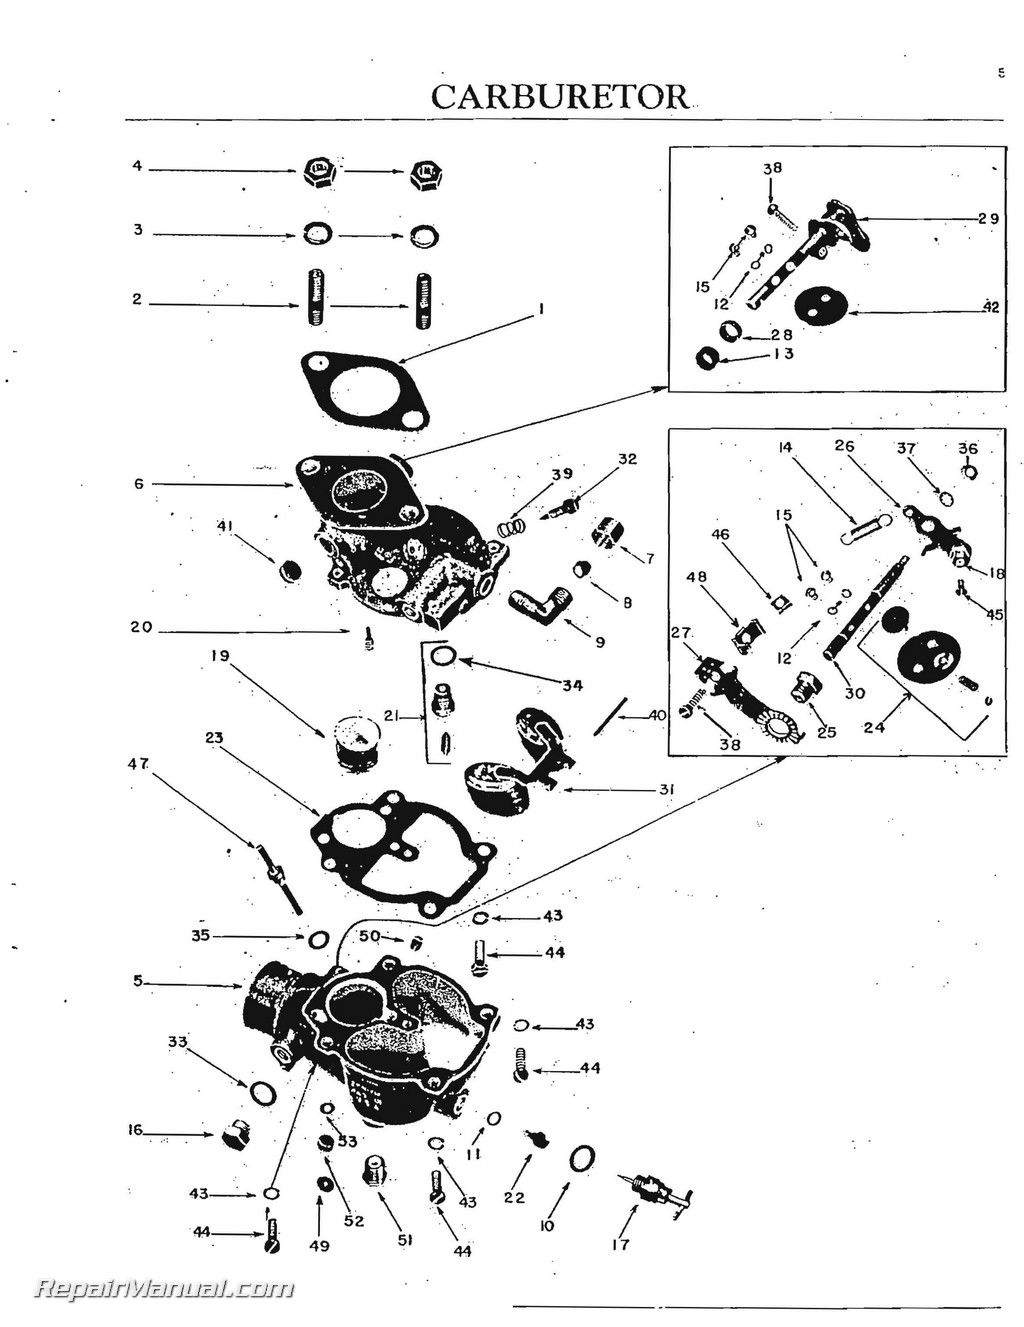 Mfwd Sensor Location also Oliver 1650 Wiring Diagram besides Viewit likewise 19223 Tractor Ignition Switch Wiring Diagram likewise Oliver 1755 Tractor Service Manual Htol S17551855. on oliver 1650 wiring diagram